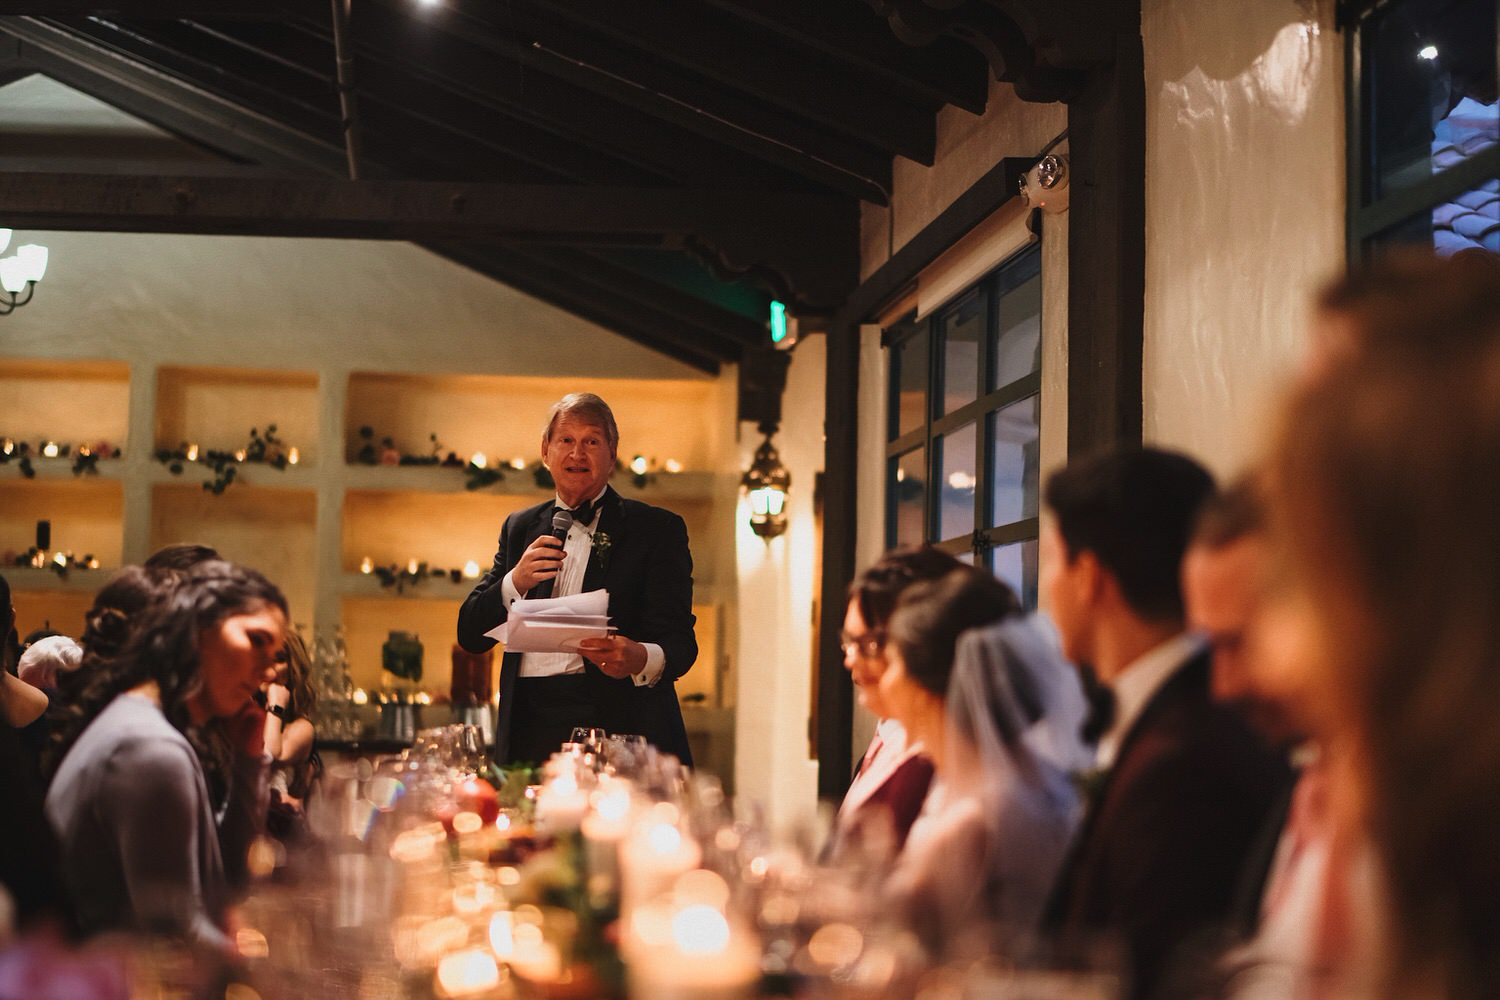 Father Toast